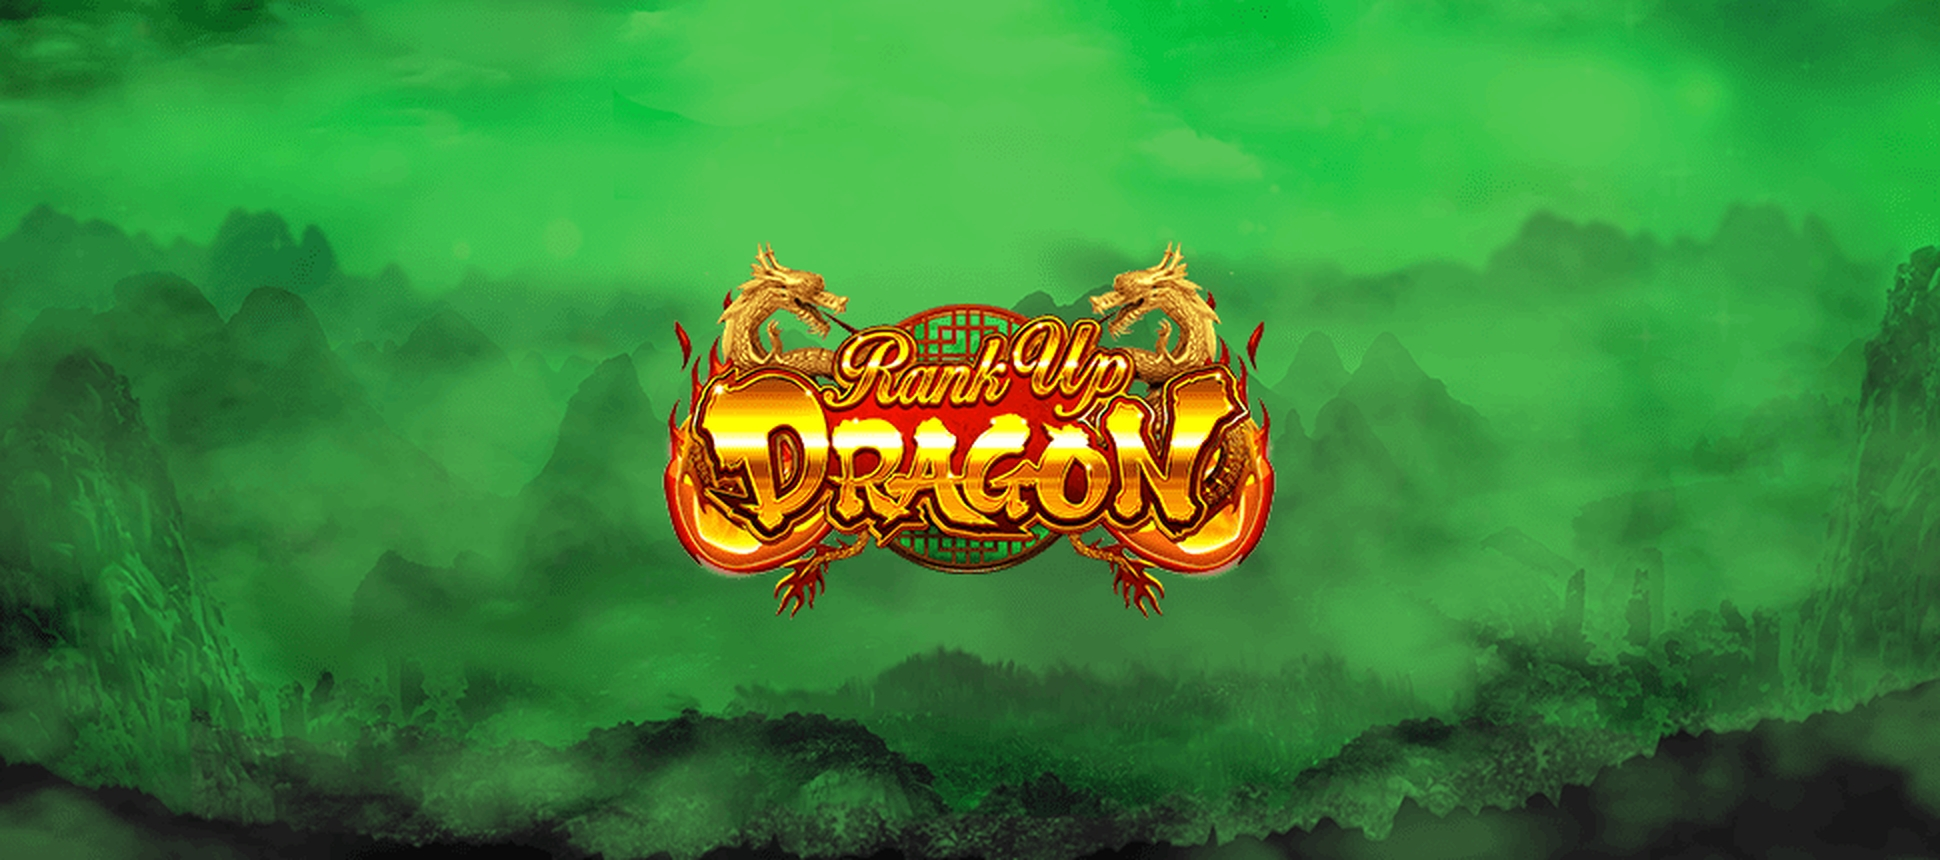 The Rank Up Dragon Online Slot Demo Game by Rising Entertainment